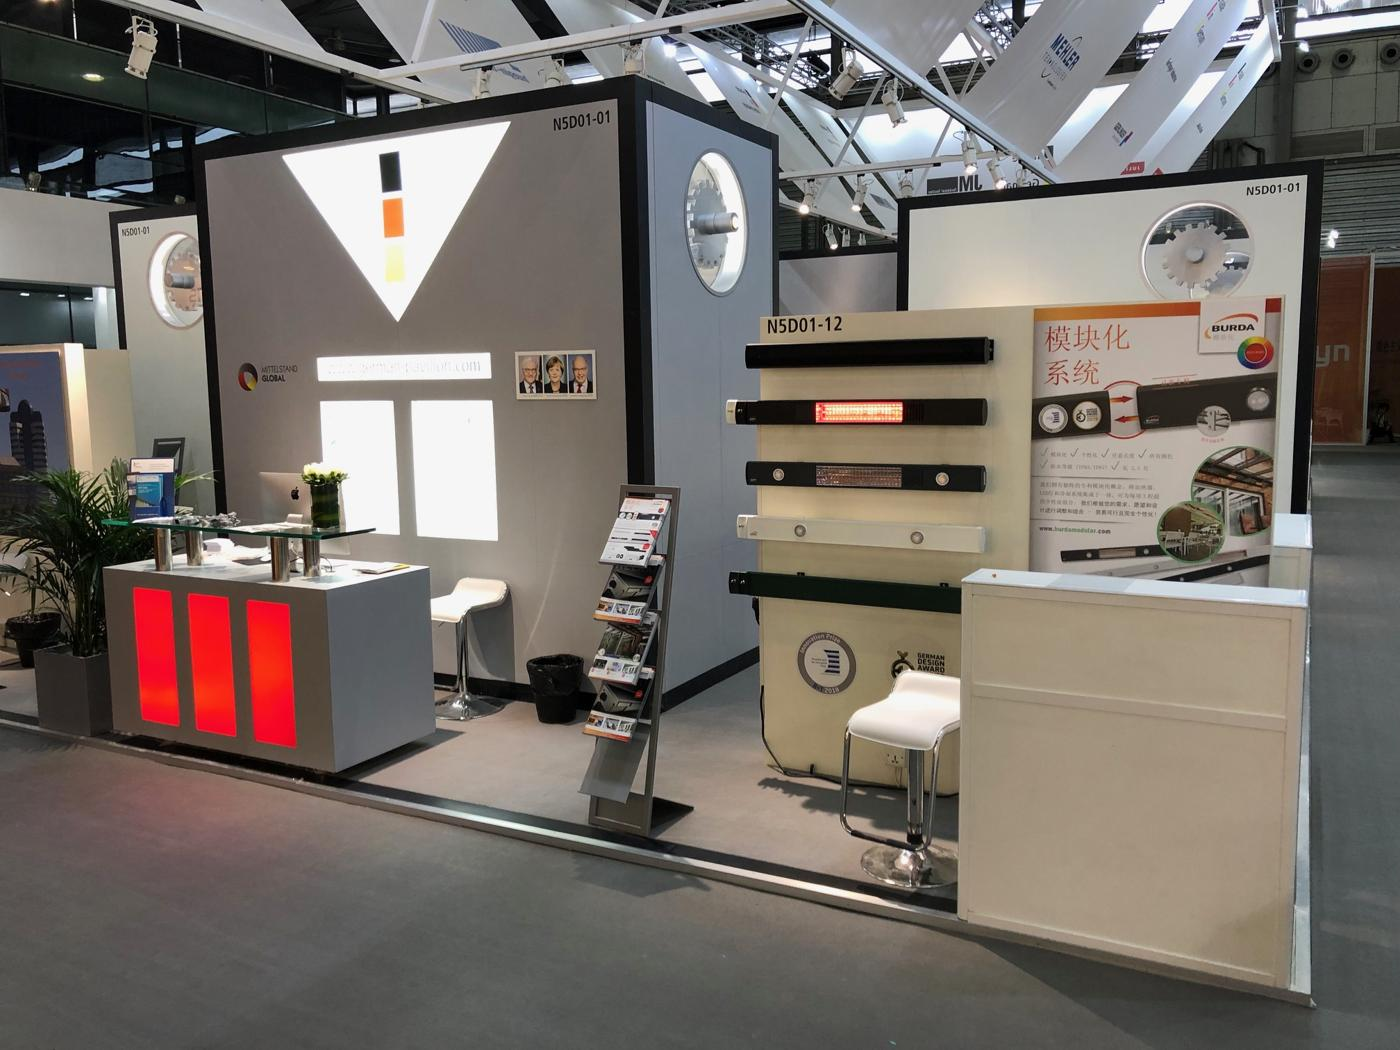 BURDA-Messestand-GERMAN-PAVILION-R+TASIA2019